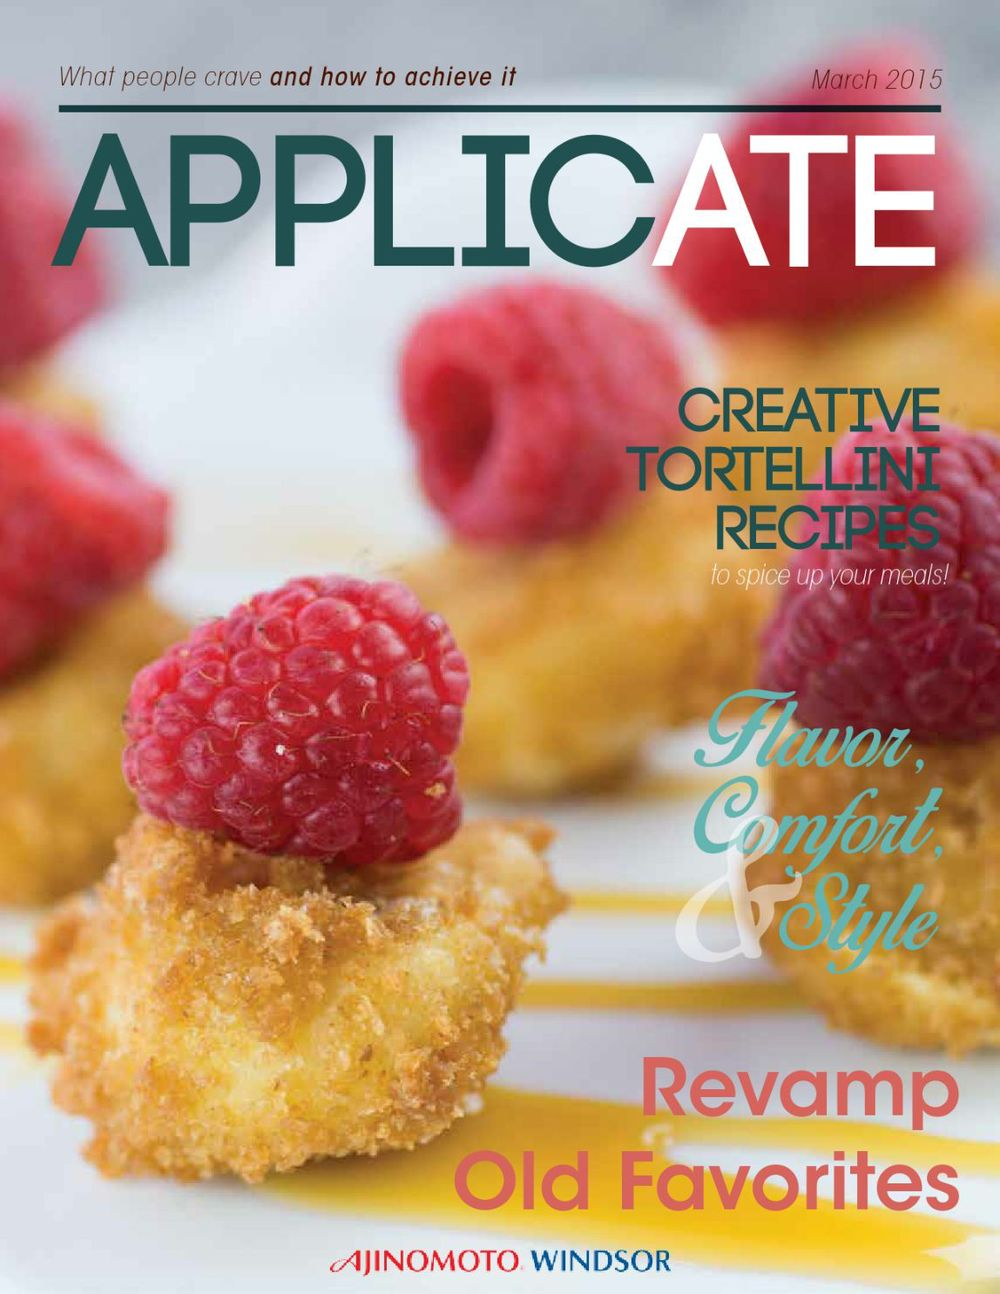 APPLICATE MAGAZINE